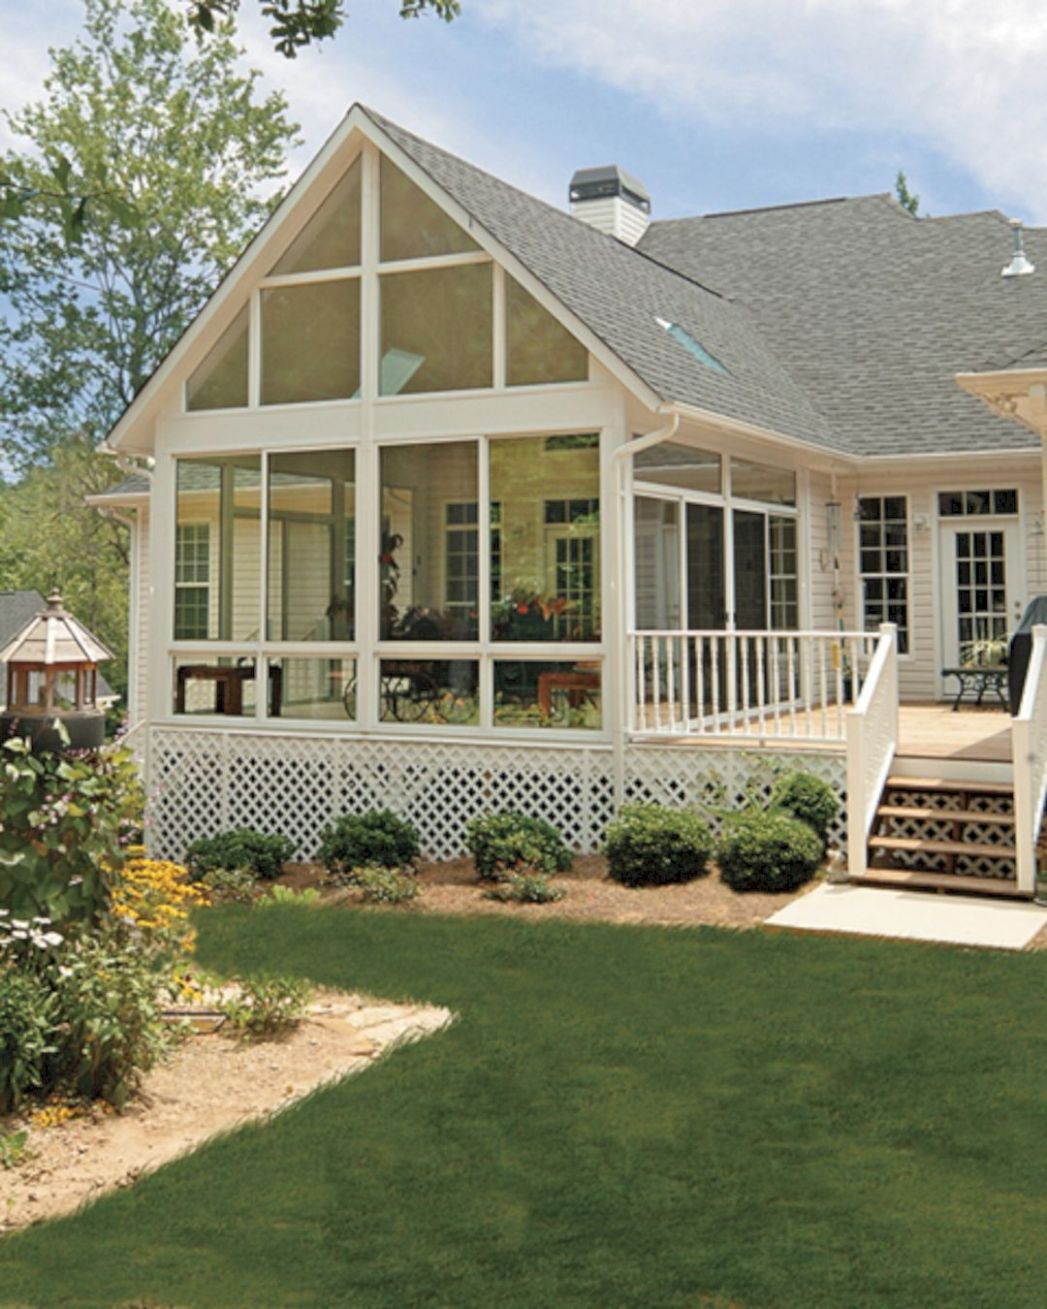 12 Ways To Have More Appealing Screened Porch Deck   Porch design ...